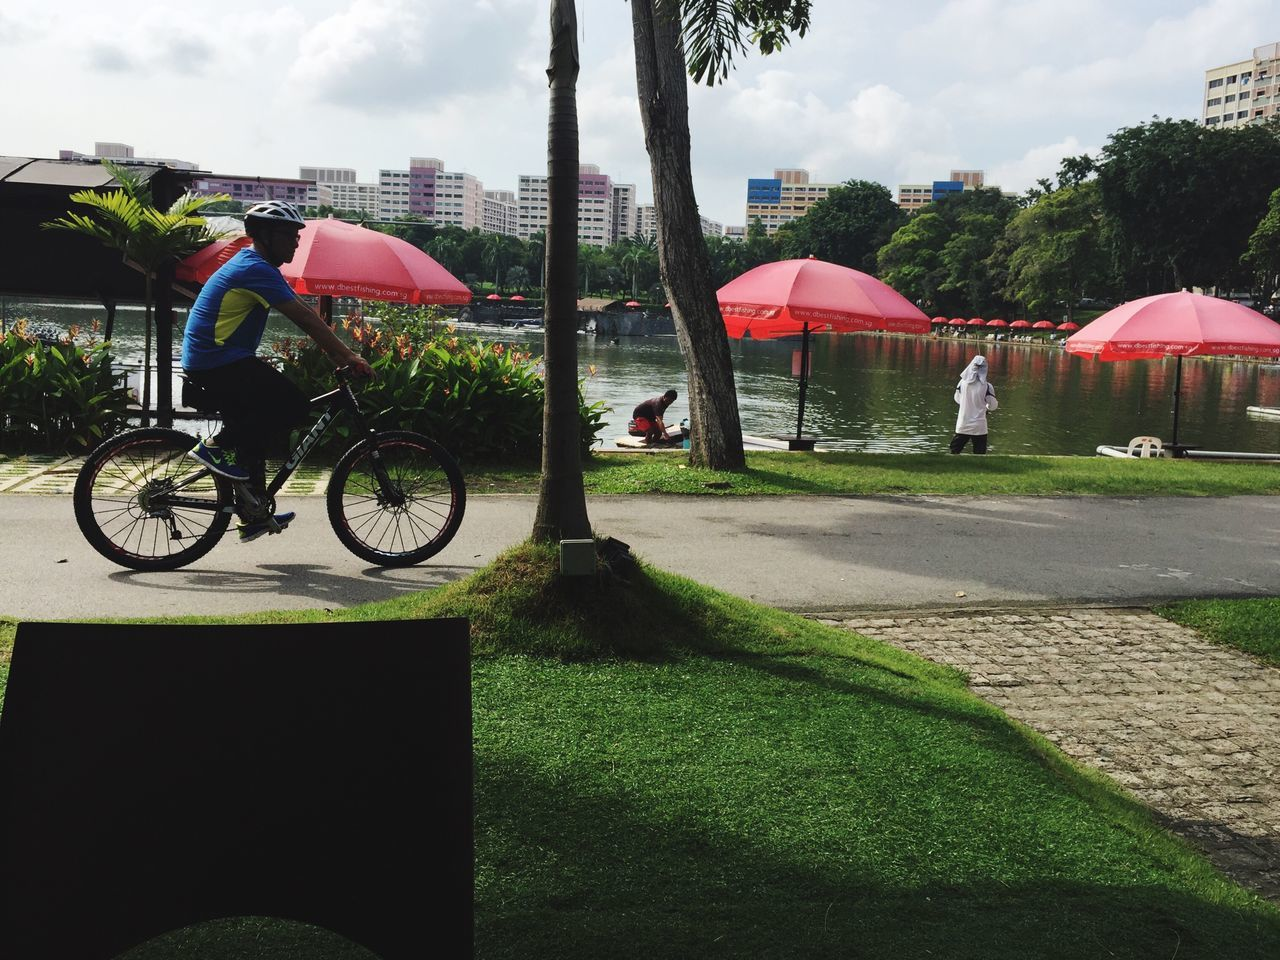 Embrace Urban Life Bicycle Mode Of Transport Transportation Land Vehicle City Cycling Outdoors Building Exterior Built Structure Real People Architecture Day Men Tree Sky People EyeEm Gallery Eyeem Singapore For The Love Of Photography